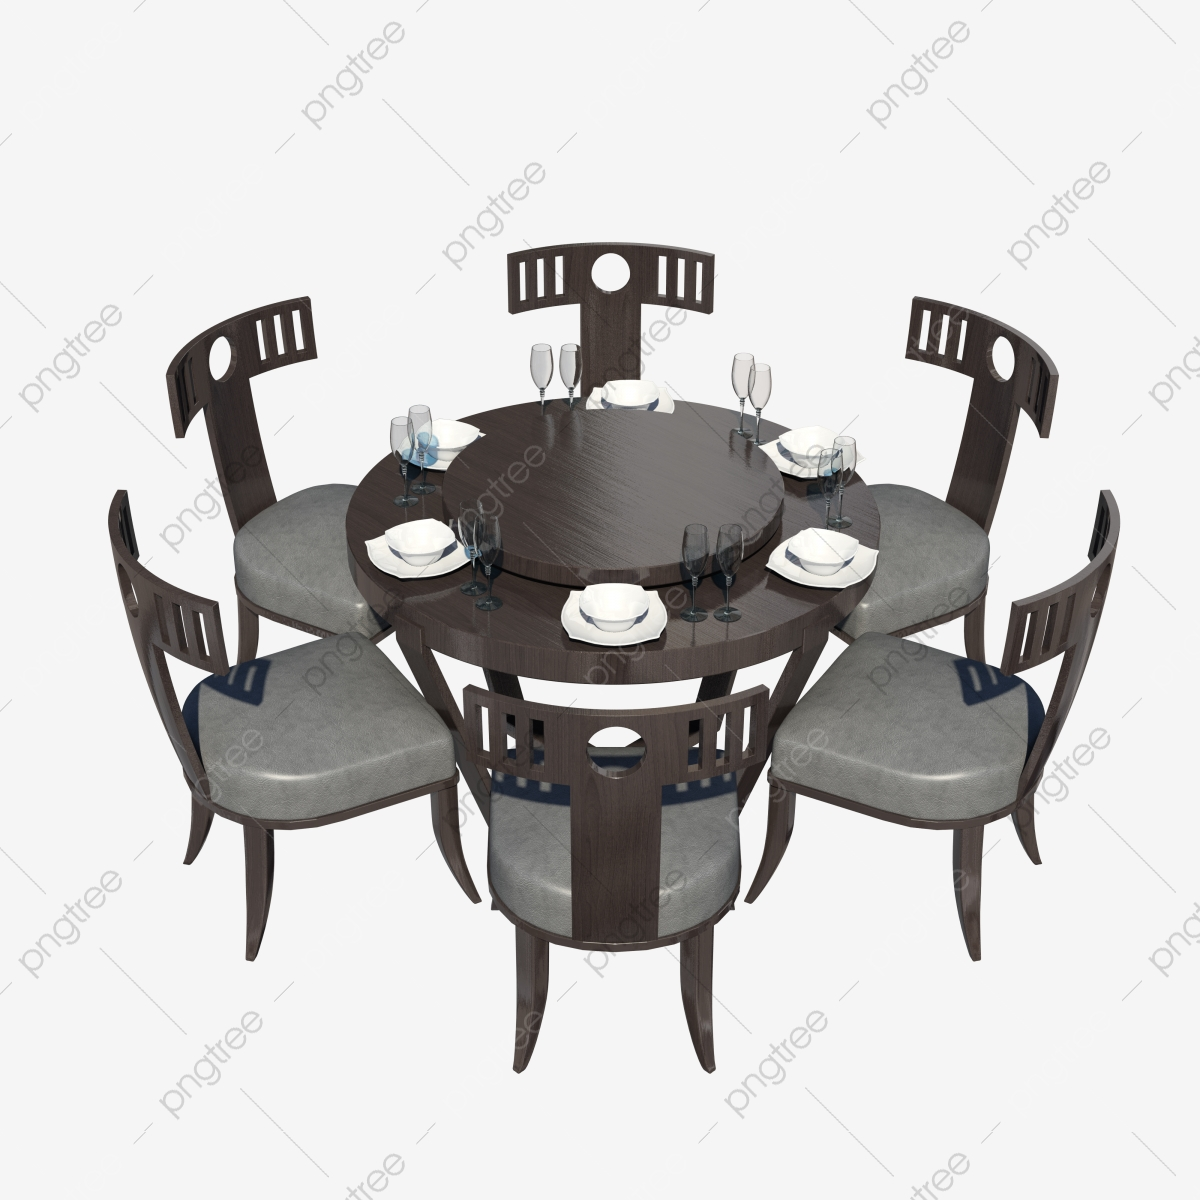 Restaurant Dining Room Round Table Chair Restaurant Dining